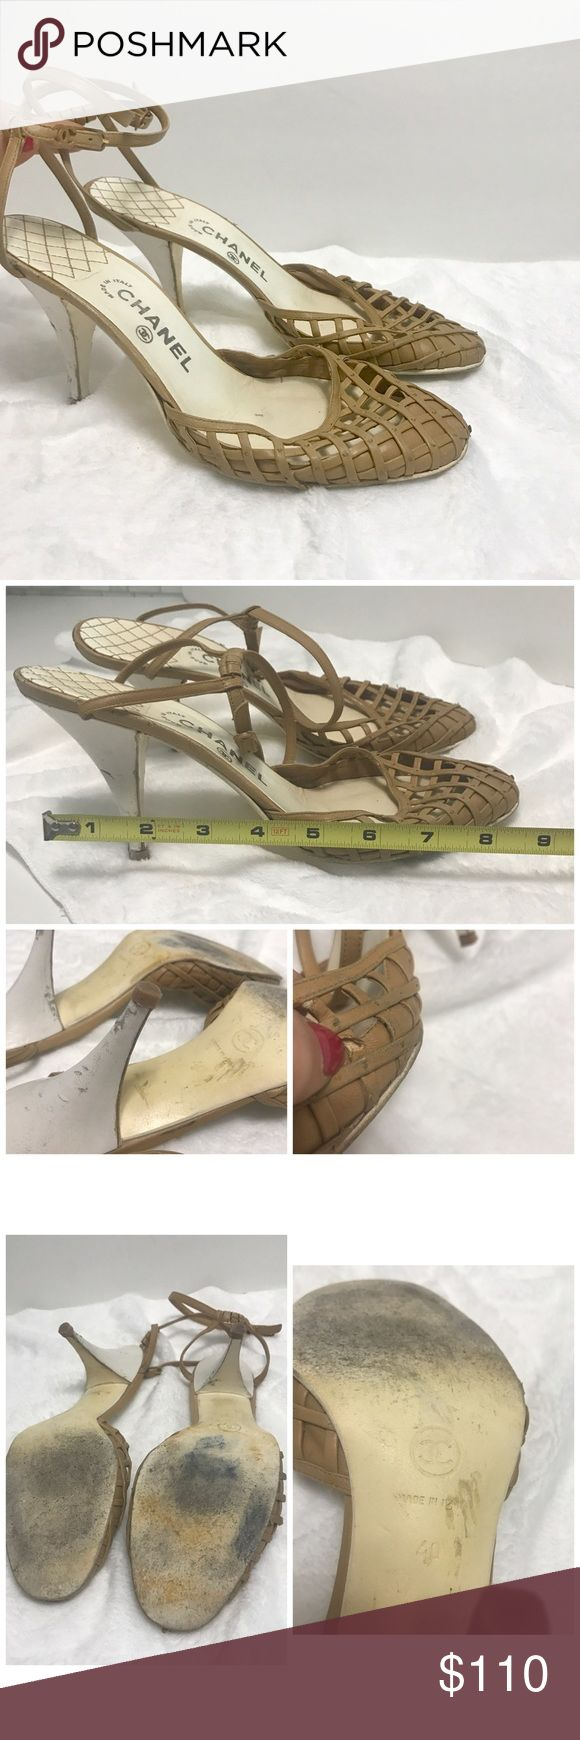 Chanel Authentic Tan Creme Shoes 40 Chanel Tan Creme Shoes 40 see measurements in listing. Shows signs of wear on shoes. Heels tear and marked.  soles insoles and on leather a small tear. Nothing a cobbler couldn't handle. Still pretty. Price reflects.  Please know your euro size. I measured in photo CHANEL Shoes Heels